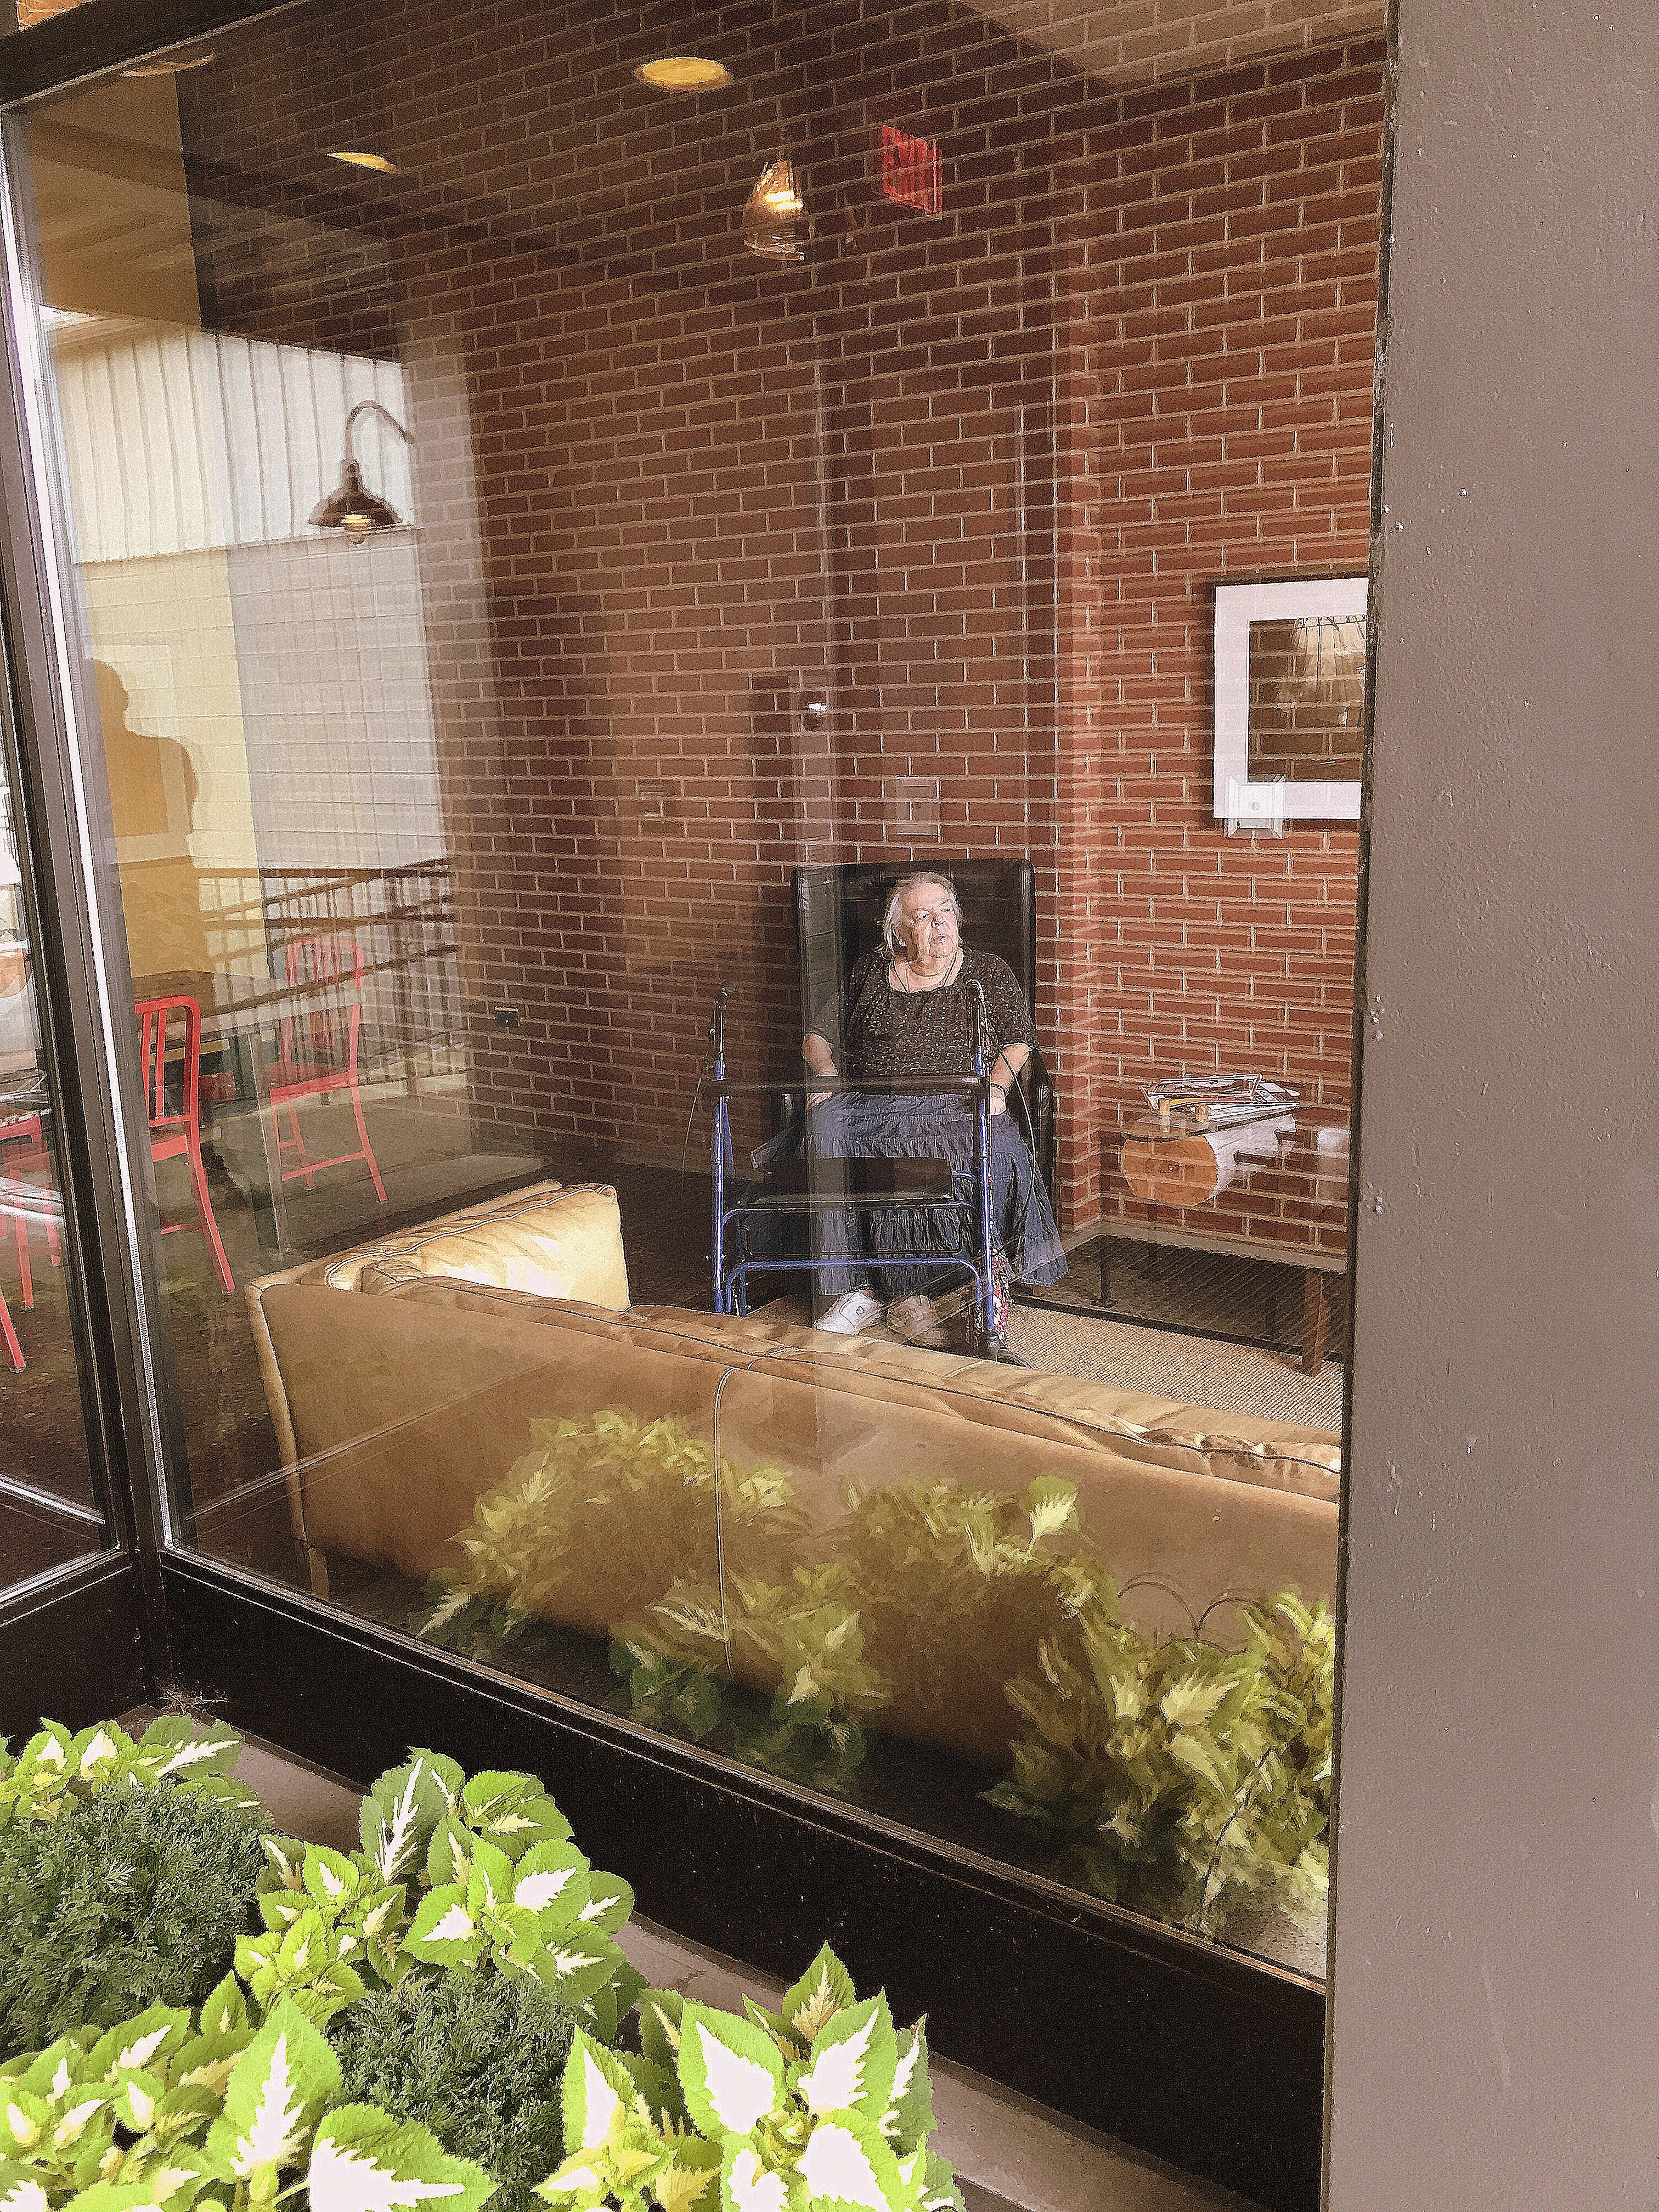 Photograph of an elderly woman with walker seated in the lobby of a building looking outward behind a glass wall with a flower boxes on the outside with lush looking greenery